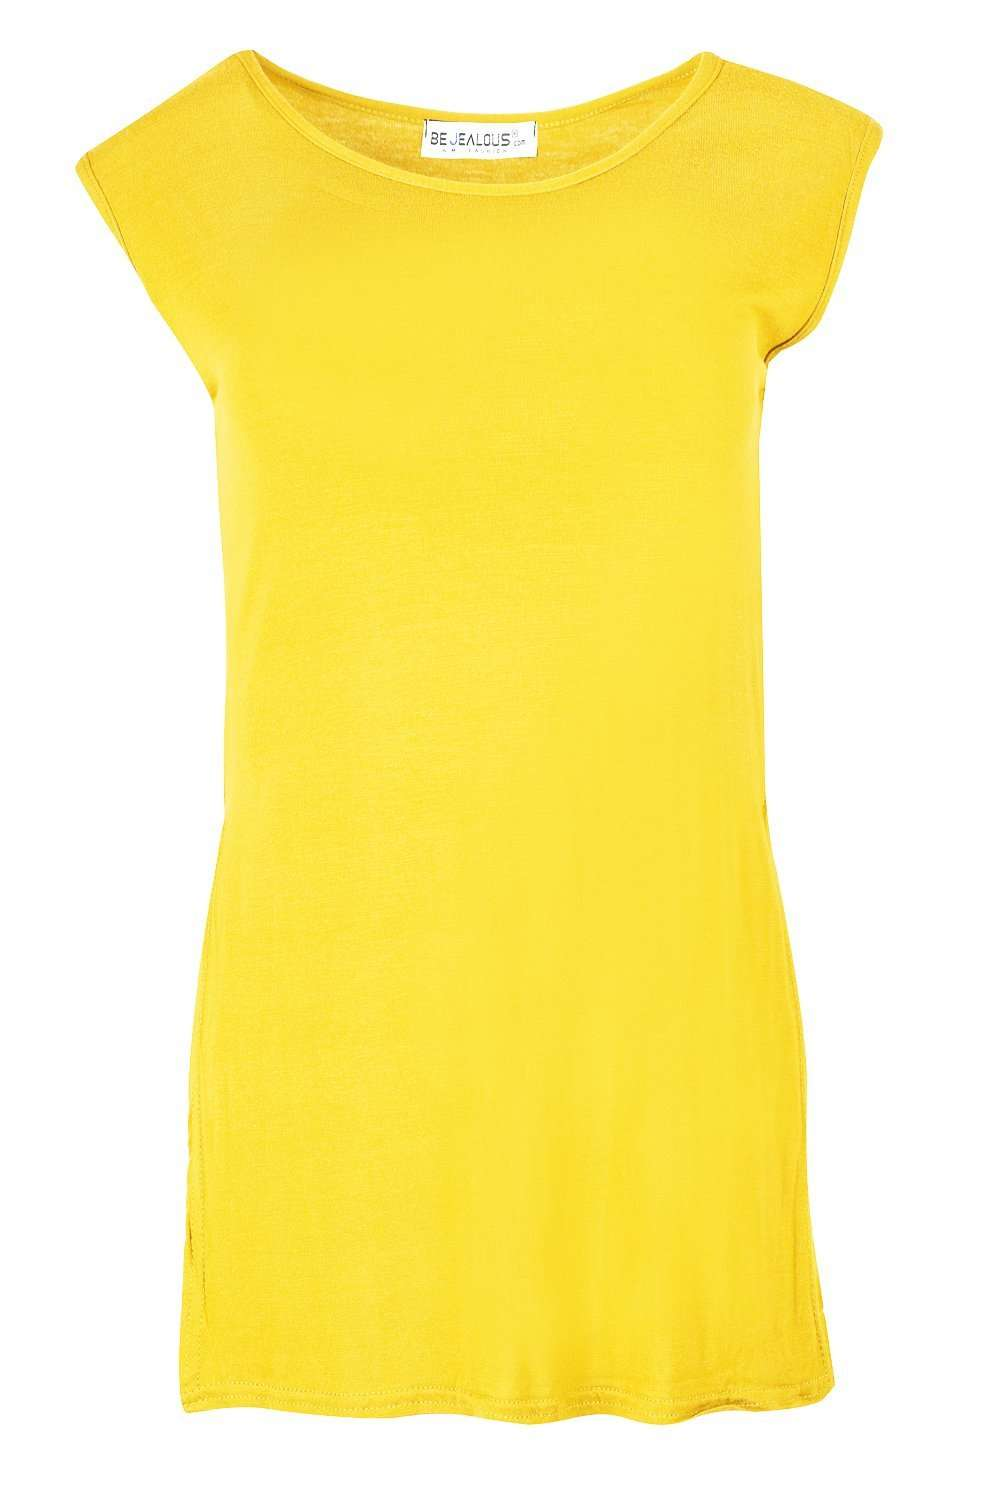 Millie Side Split Oversized Basic Vest Top - bejealous-com